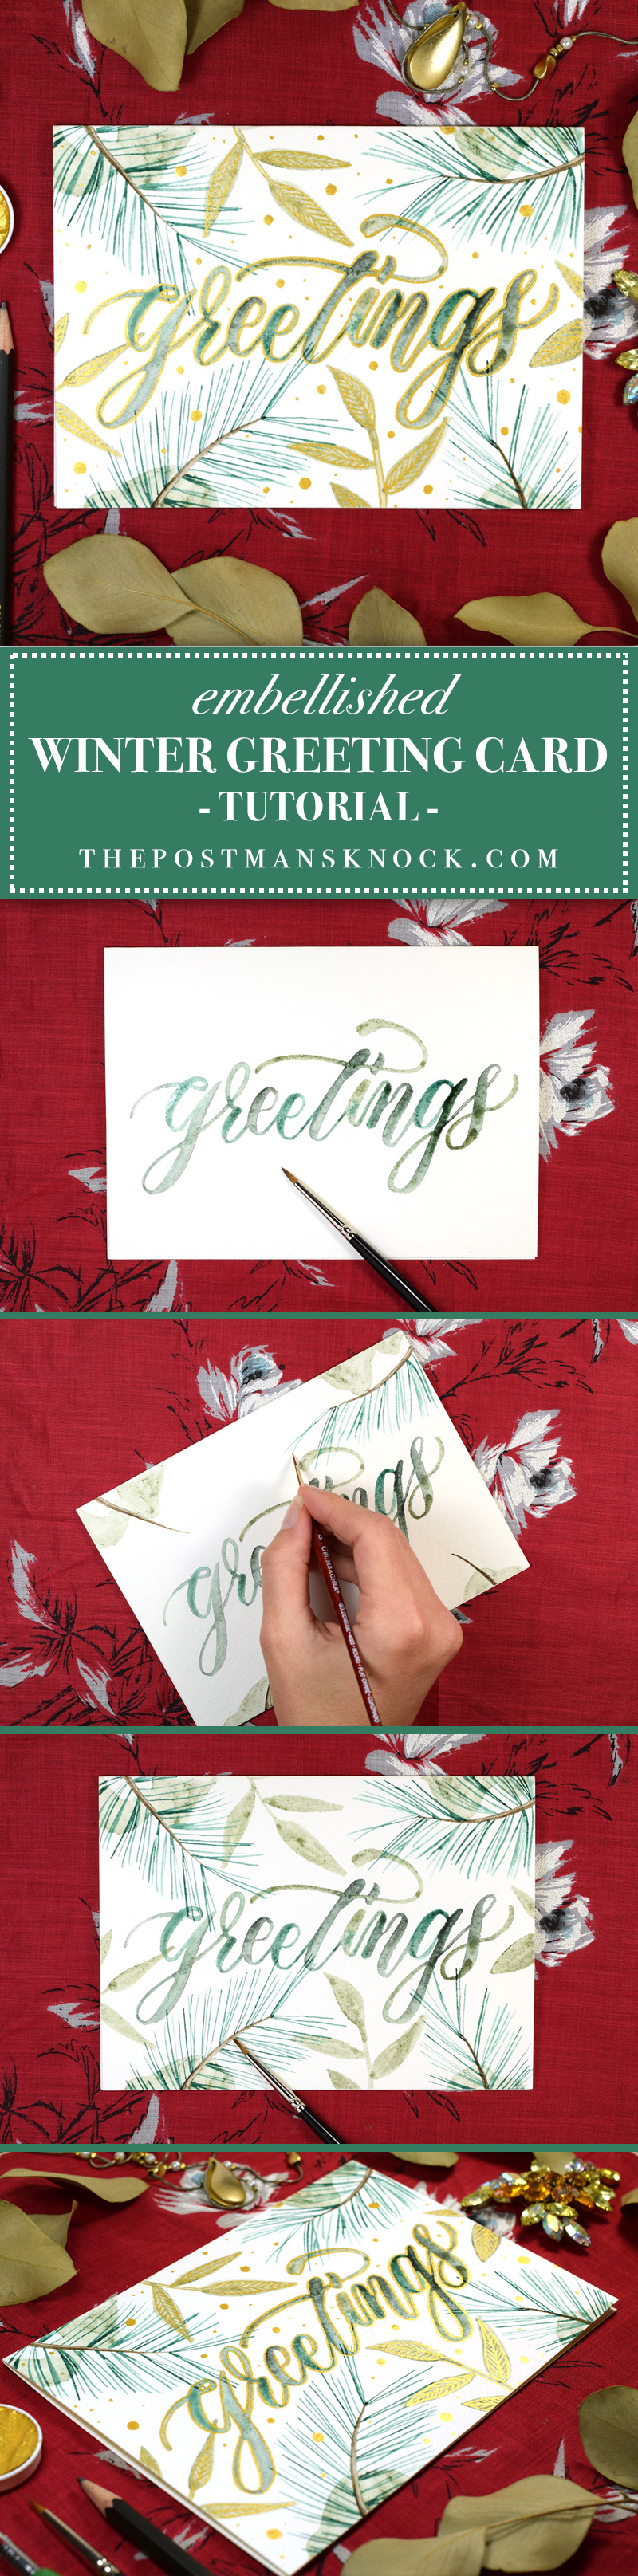 Winter greeting card tutorial the postmans knock embellished winter greeting card tutorial the postmans knock kristyandbryce Image collections